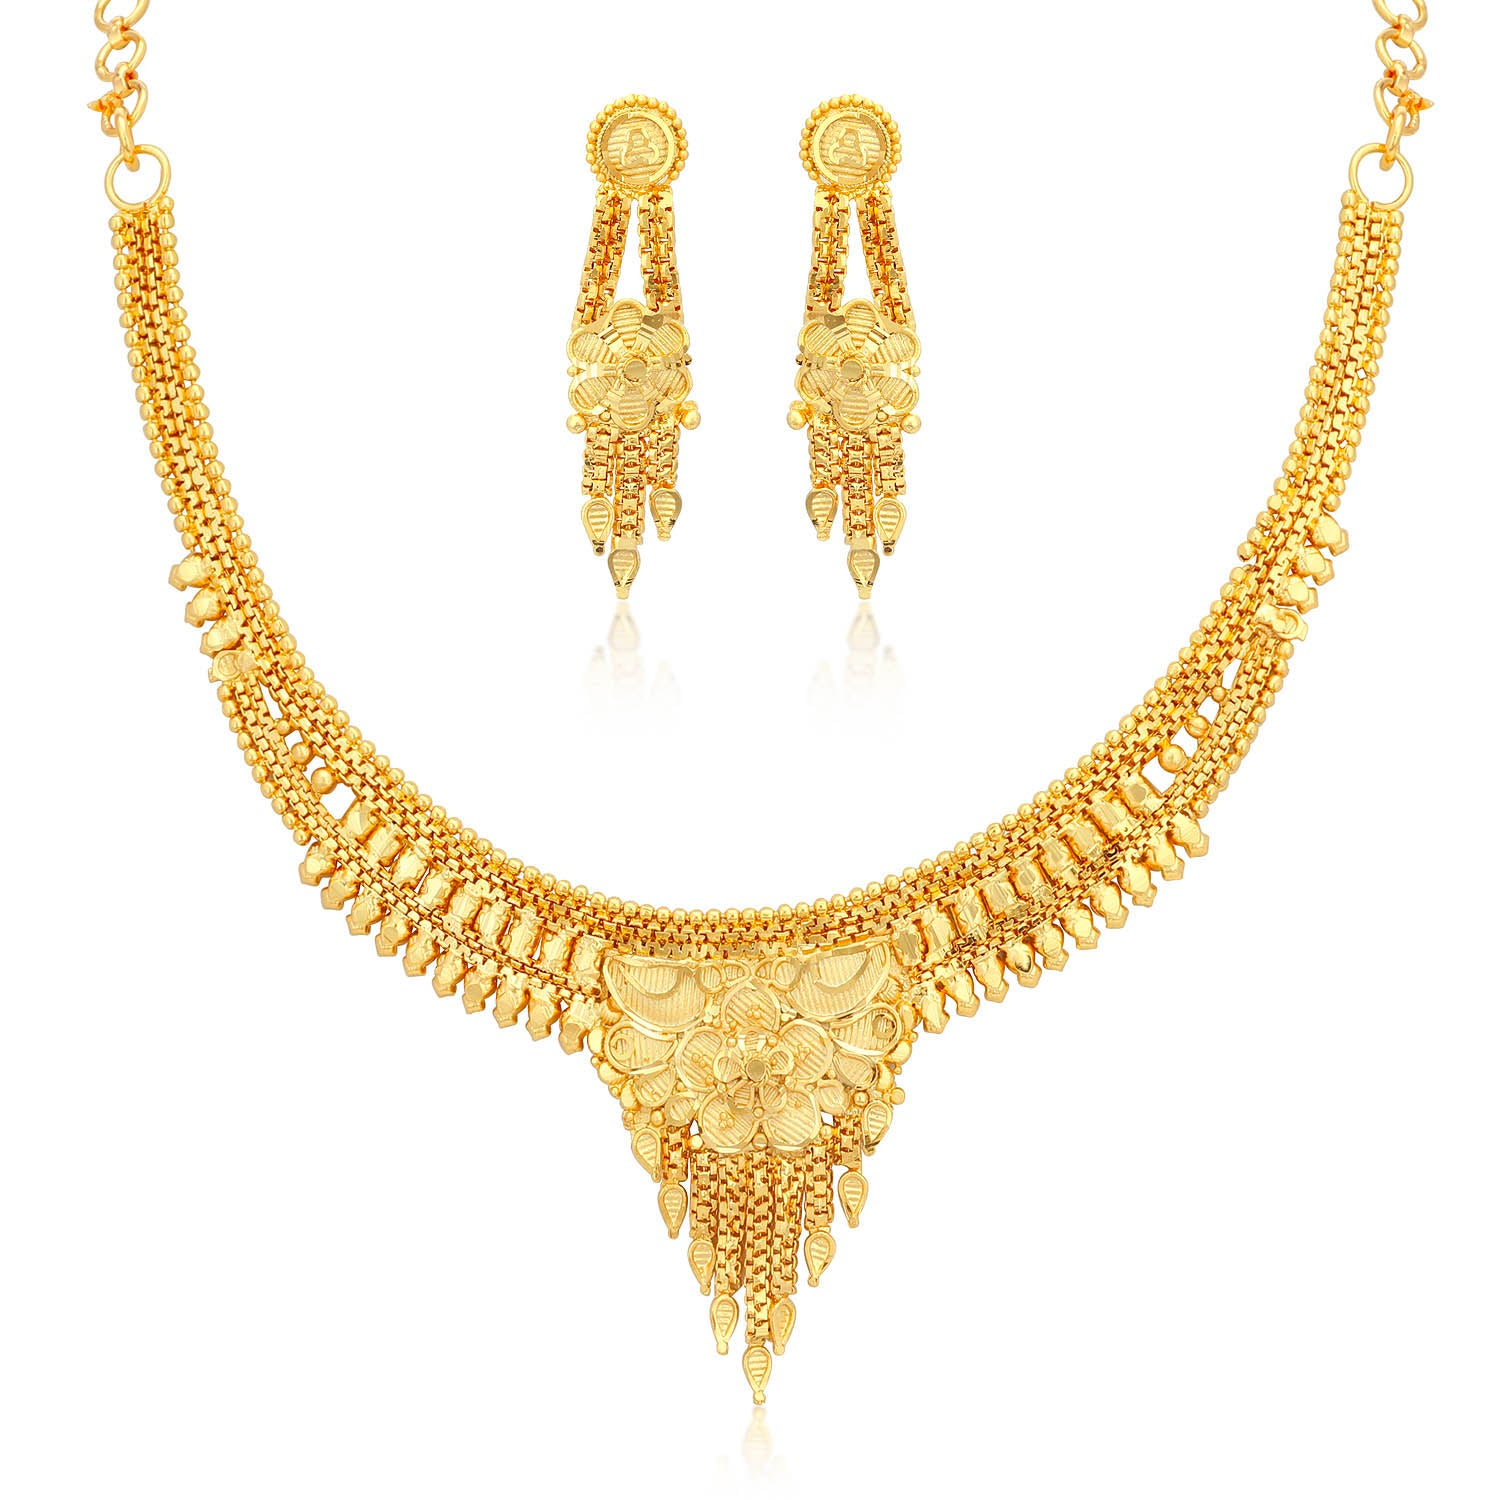 96d57caebd Sukkhi Dazzling 24 Carat 1 Gram Gold Jewellery Necklace Set for Women